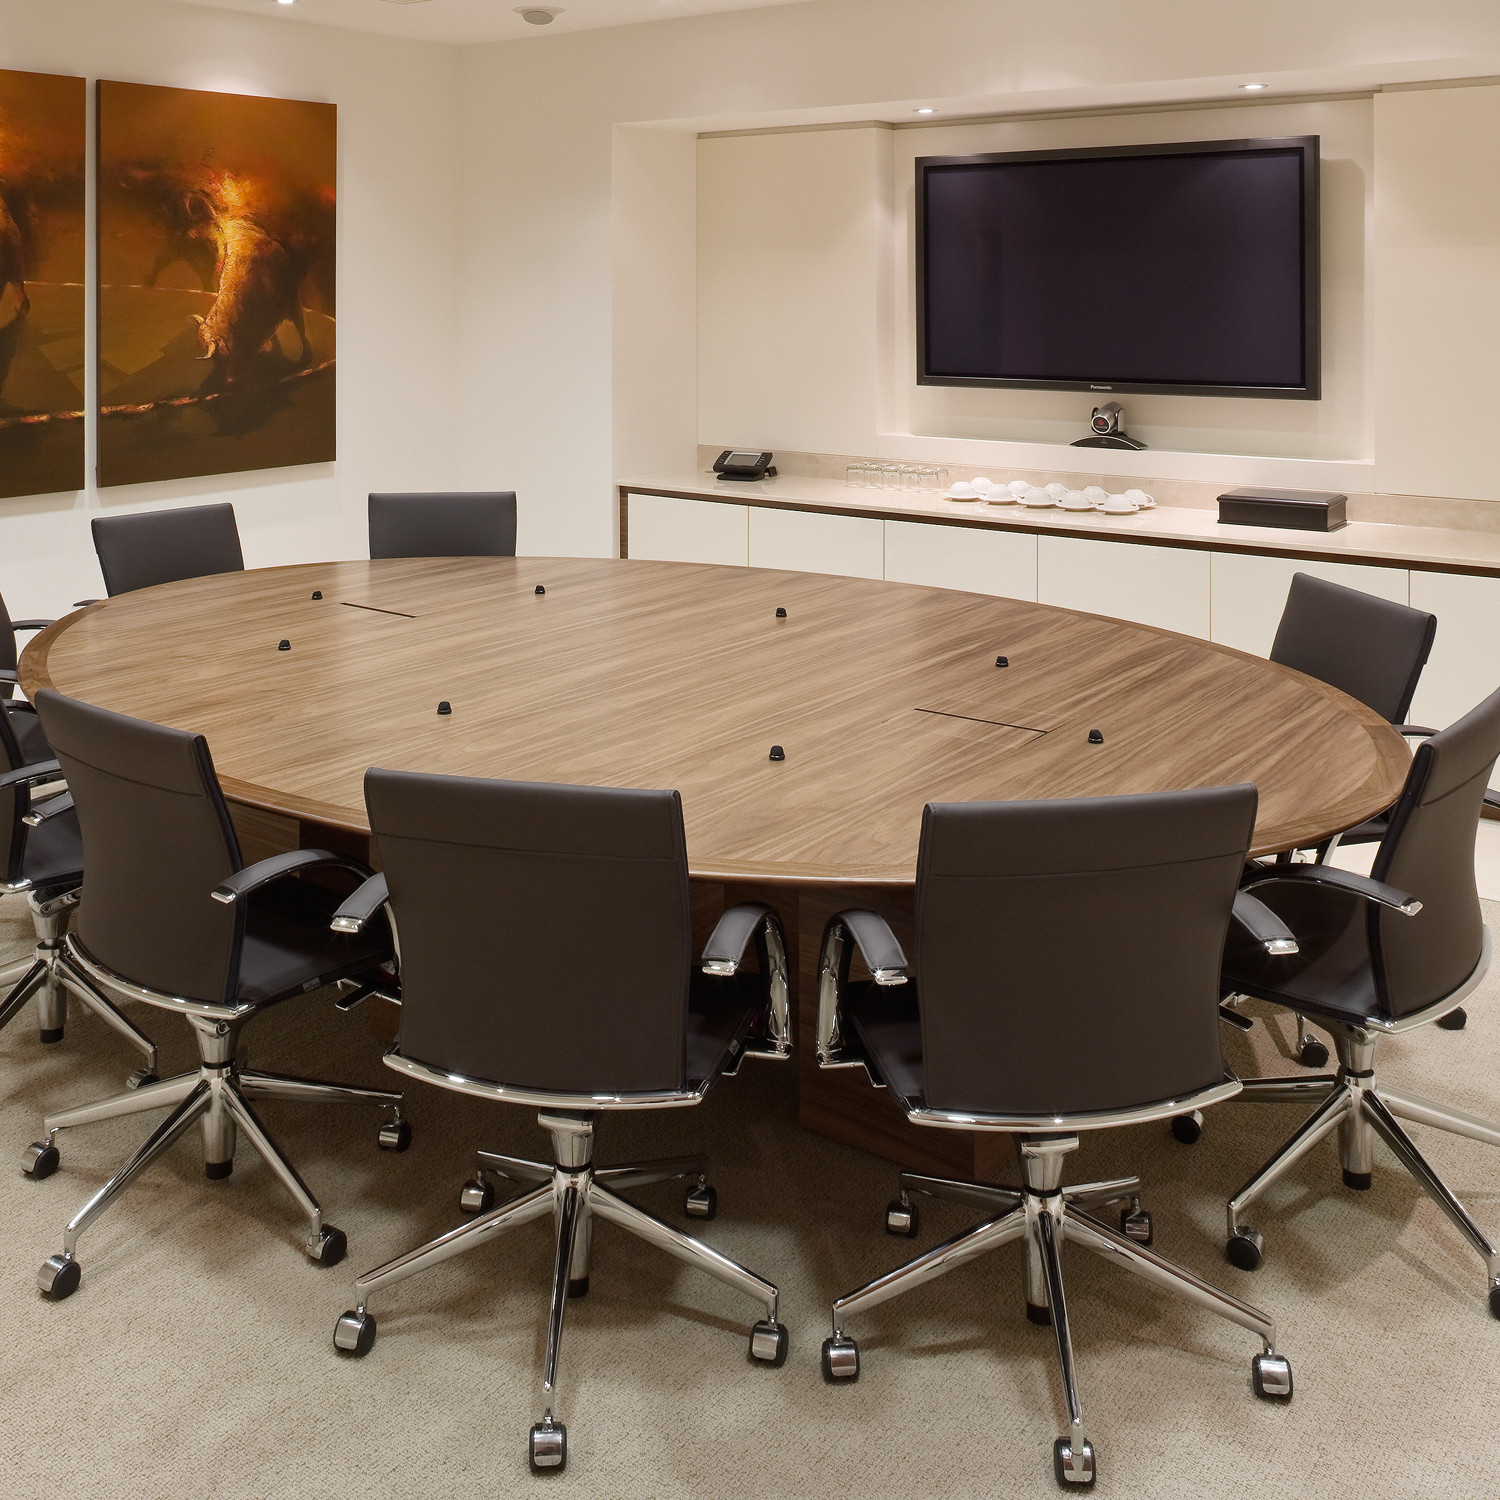 Congress Tables  Meeting Room Tables  Apres Office Furniture